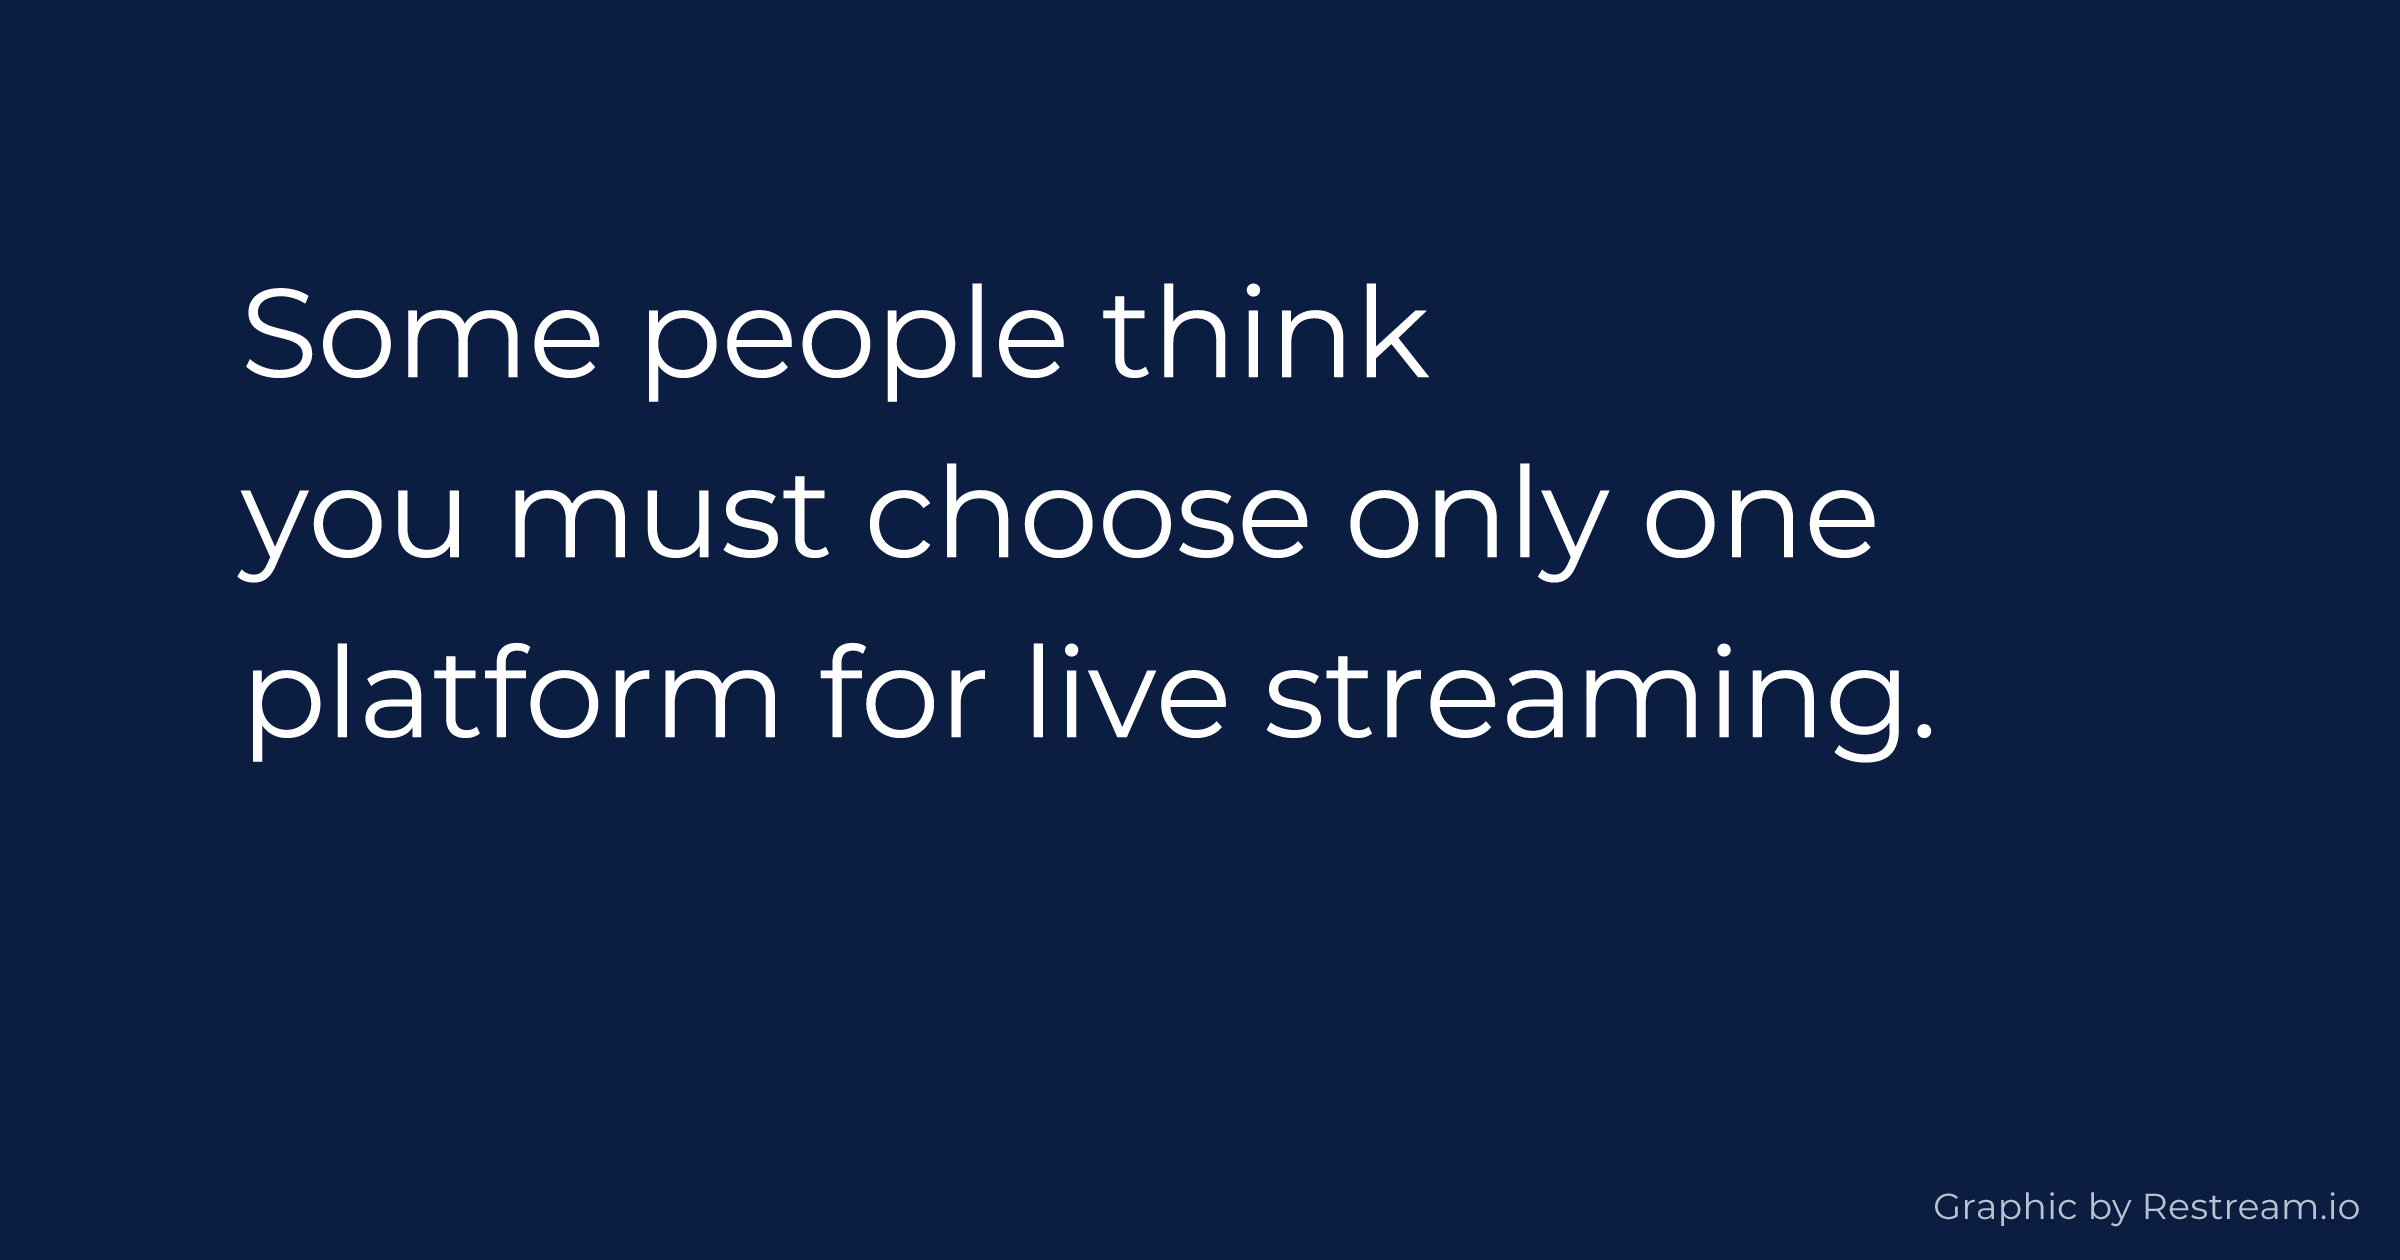 Some people think you must choose only one platform for live streaming